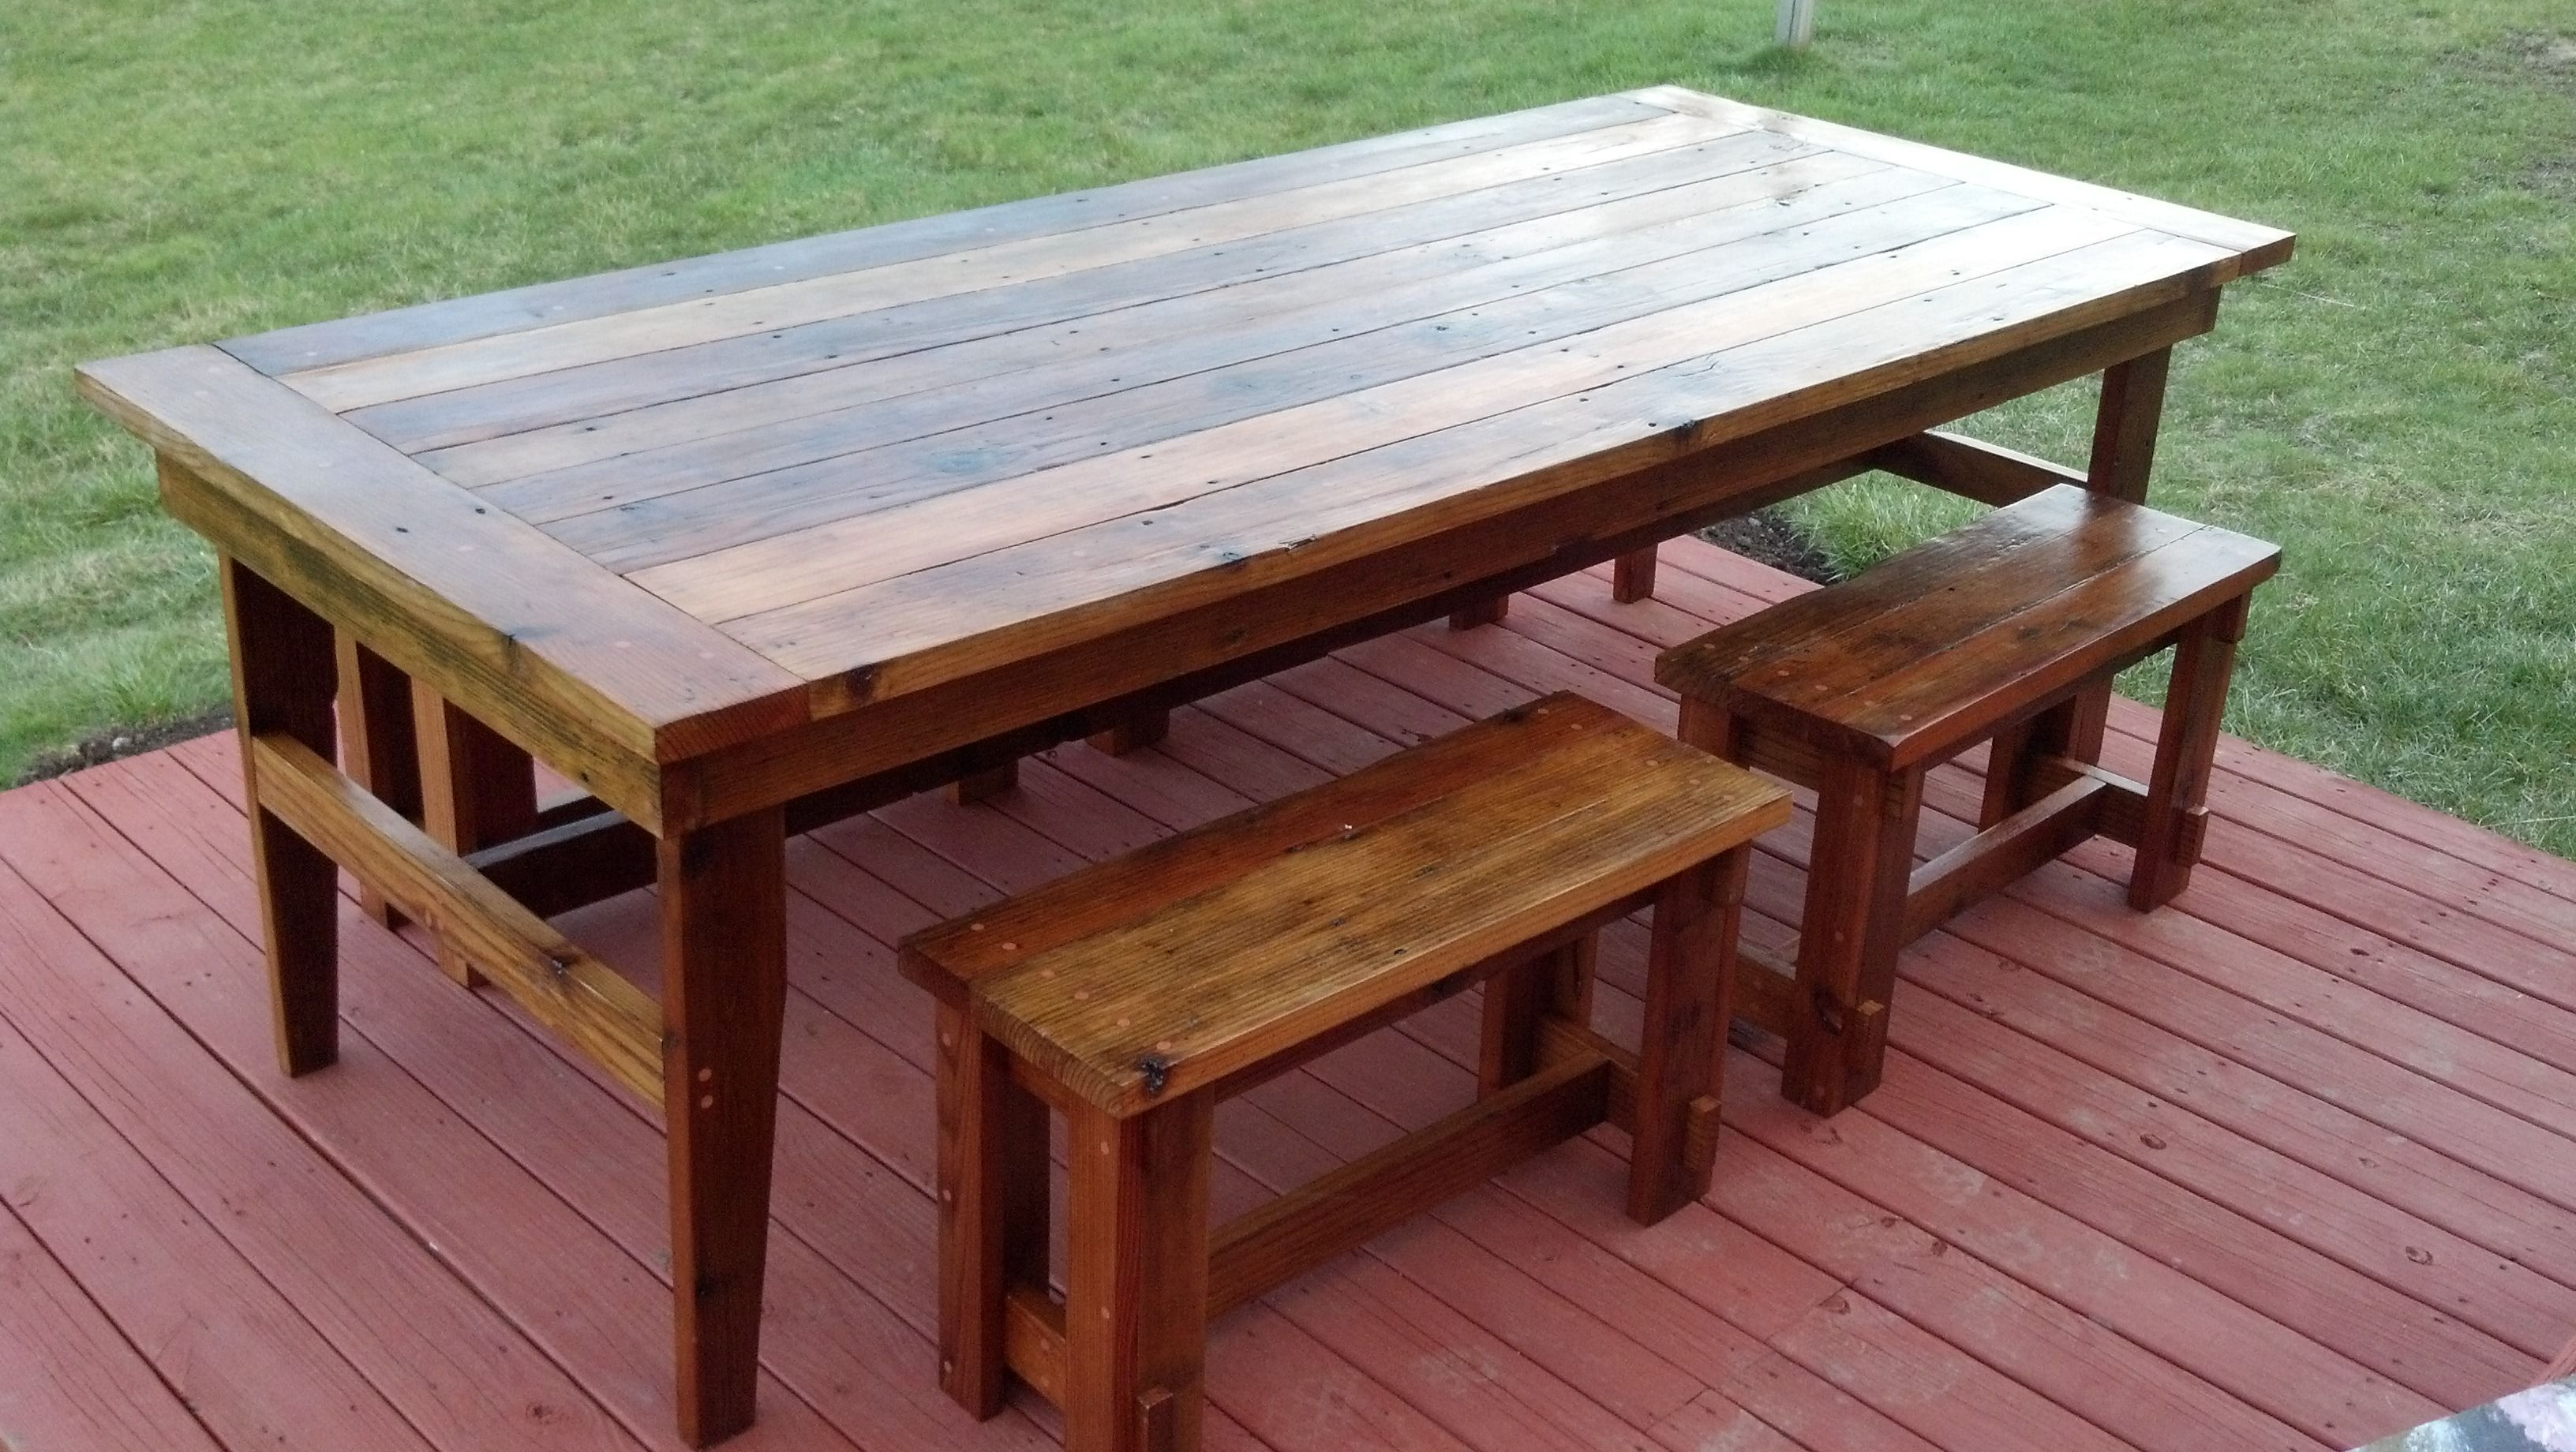 Rustic Farm Table Benches plans Around the House Useful